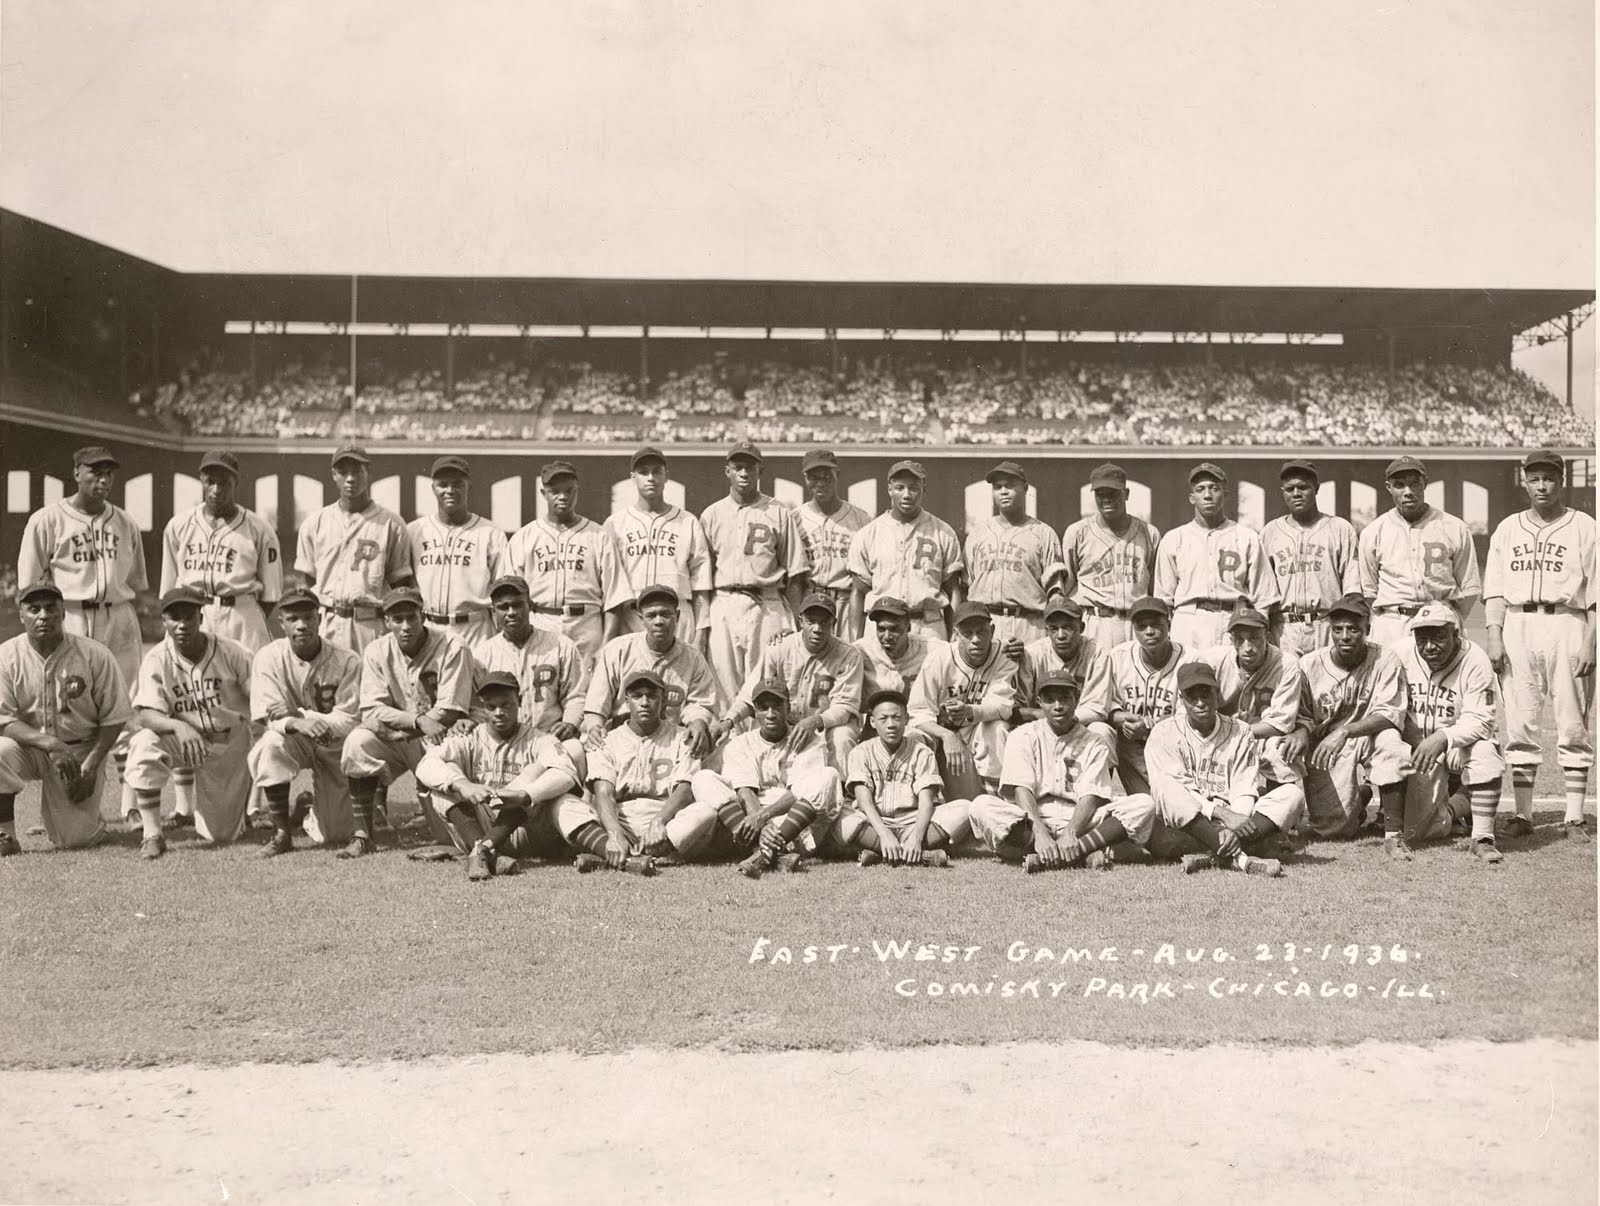 The 1936 Negro League All Stars at the old Comisky Park.